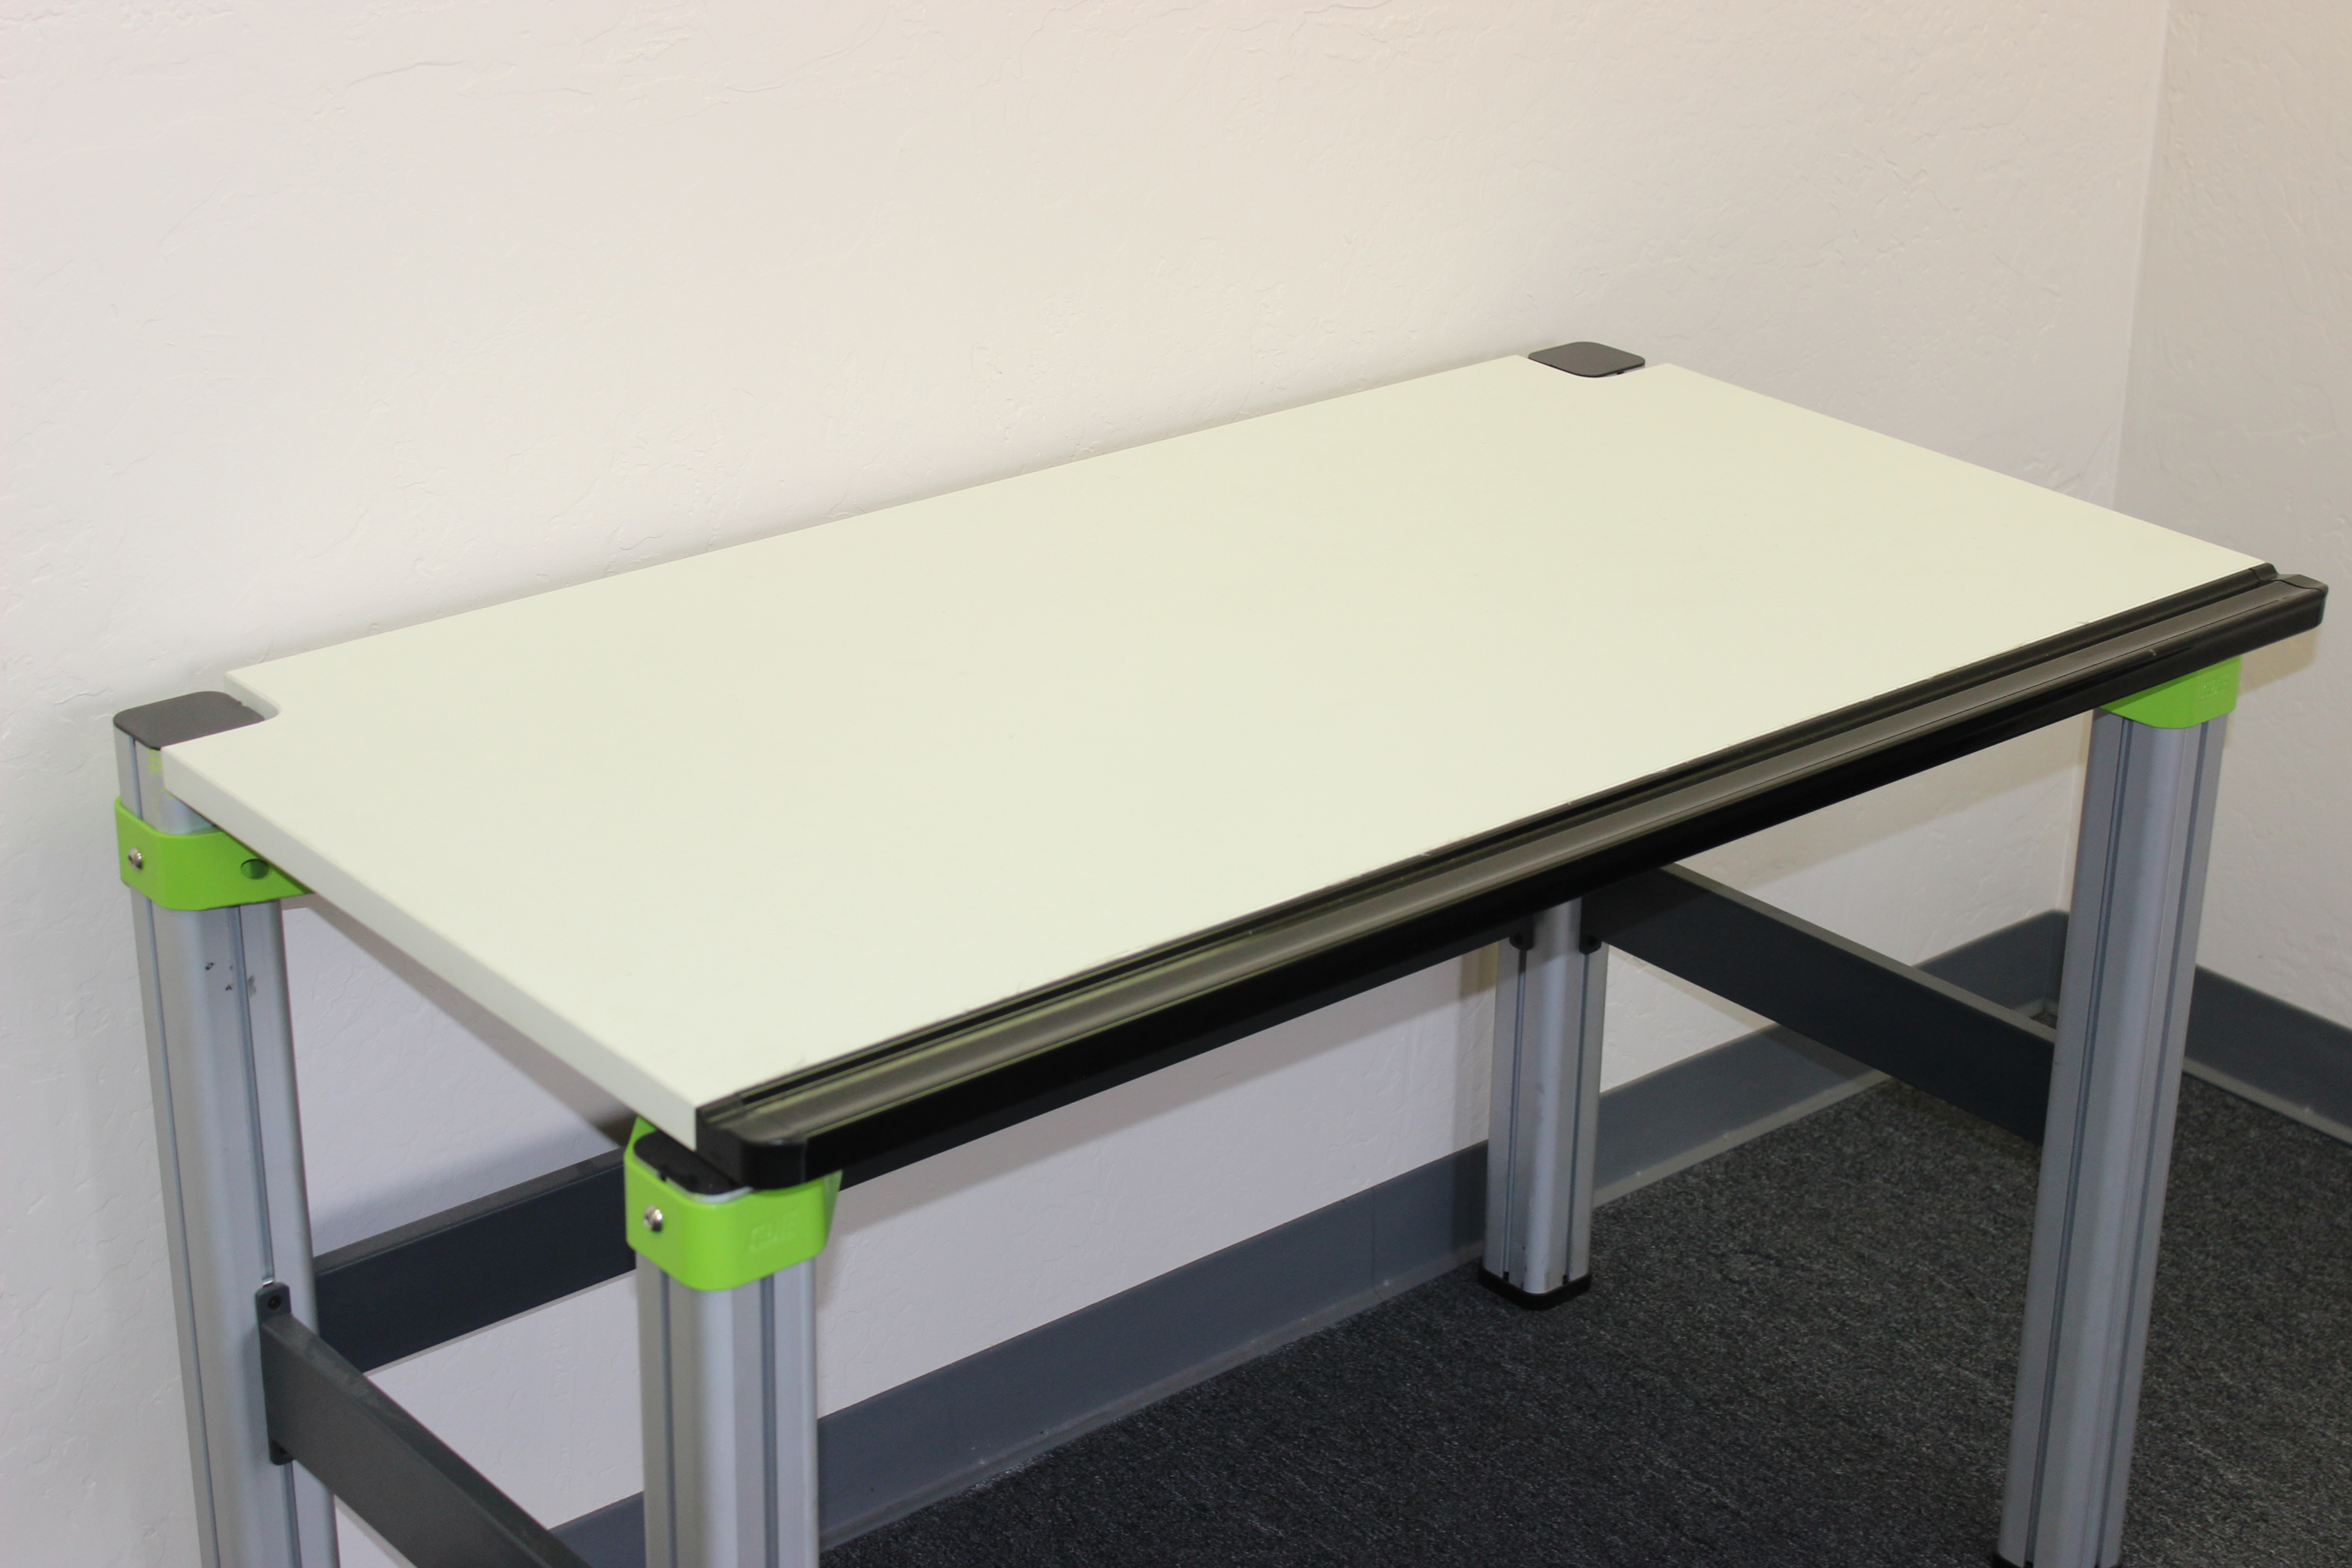 4 ft Electronics Workbench with Aluminum Extruded Legs